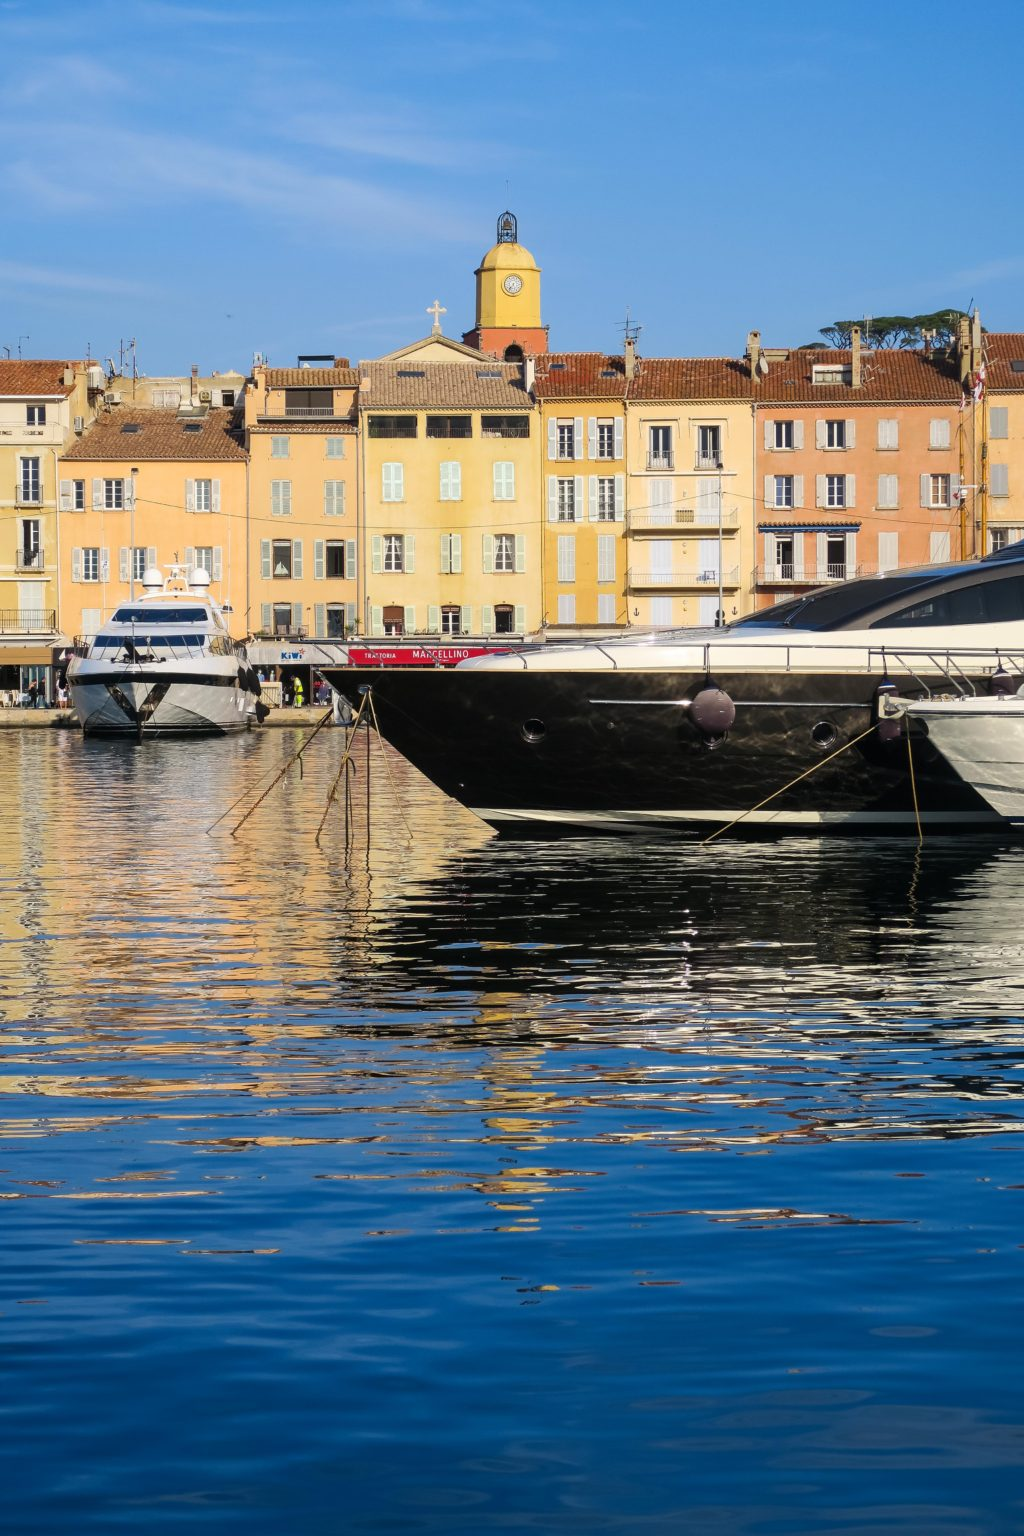 Saint Tropez, South of France. Travel Diary & Blog by Rosie Andre (wanderlust, cote d'azur, provence, french riviera, monaco, nice, 21 photos, inspiration, photo, photography, photographs, inspo, inspiration, visit, guide, day trip, summer, holiday, vacation, beautiful, architecture, yachts)